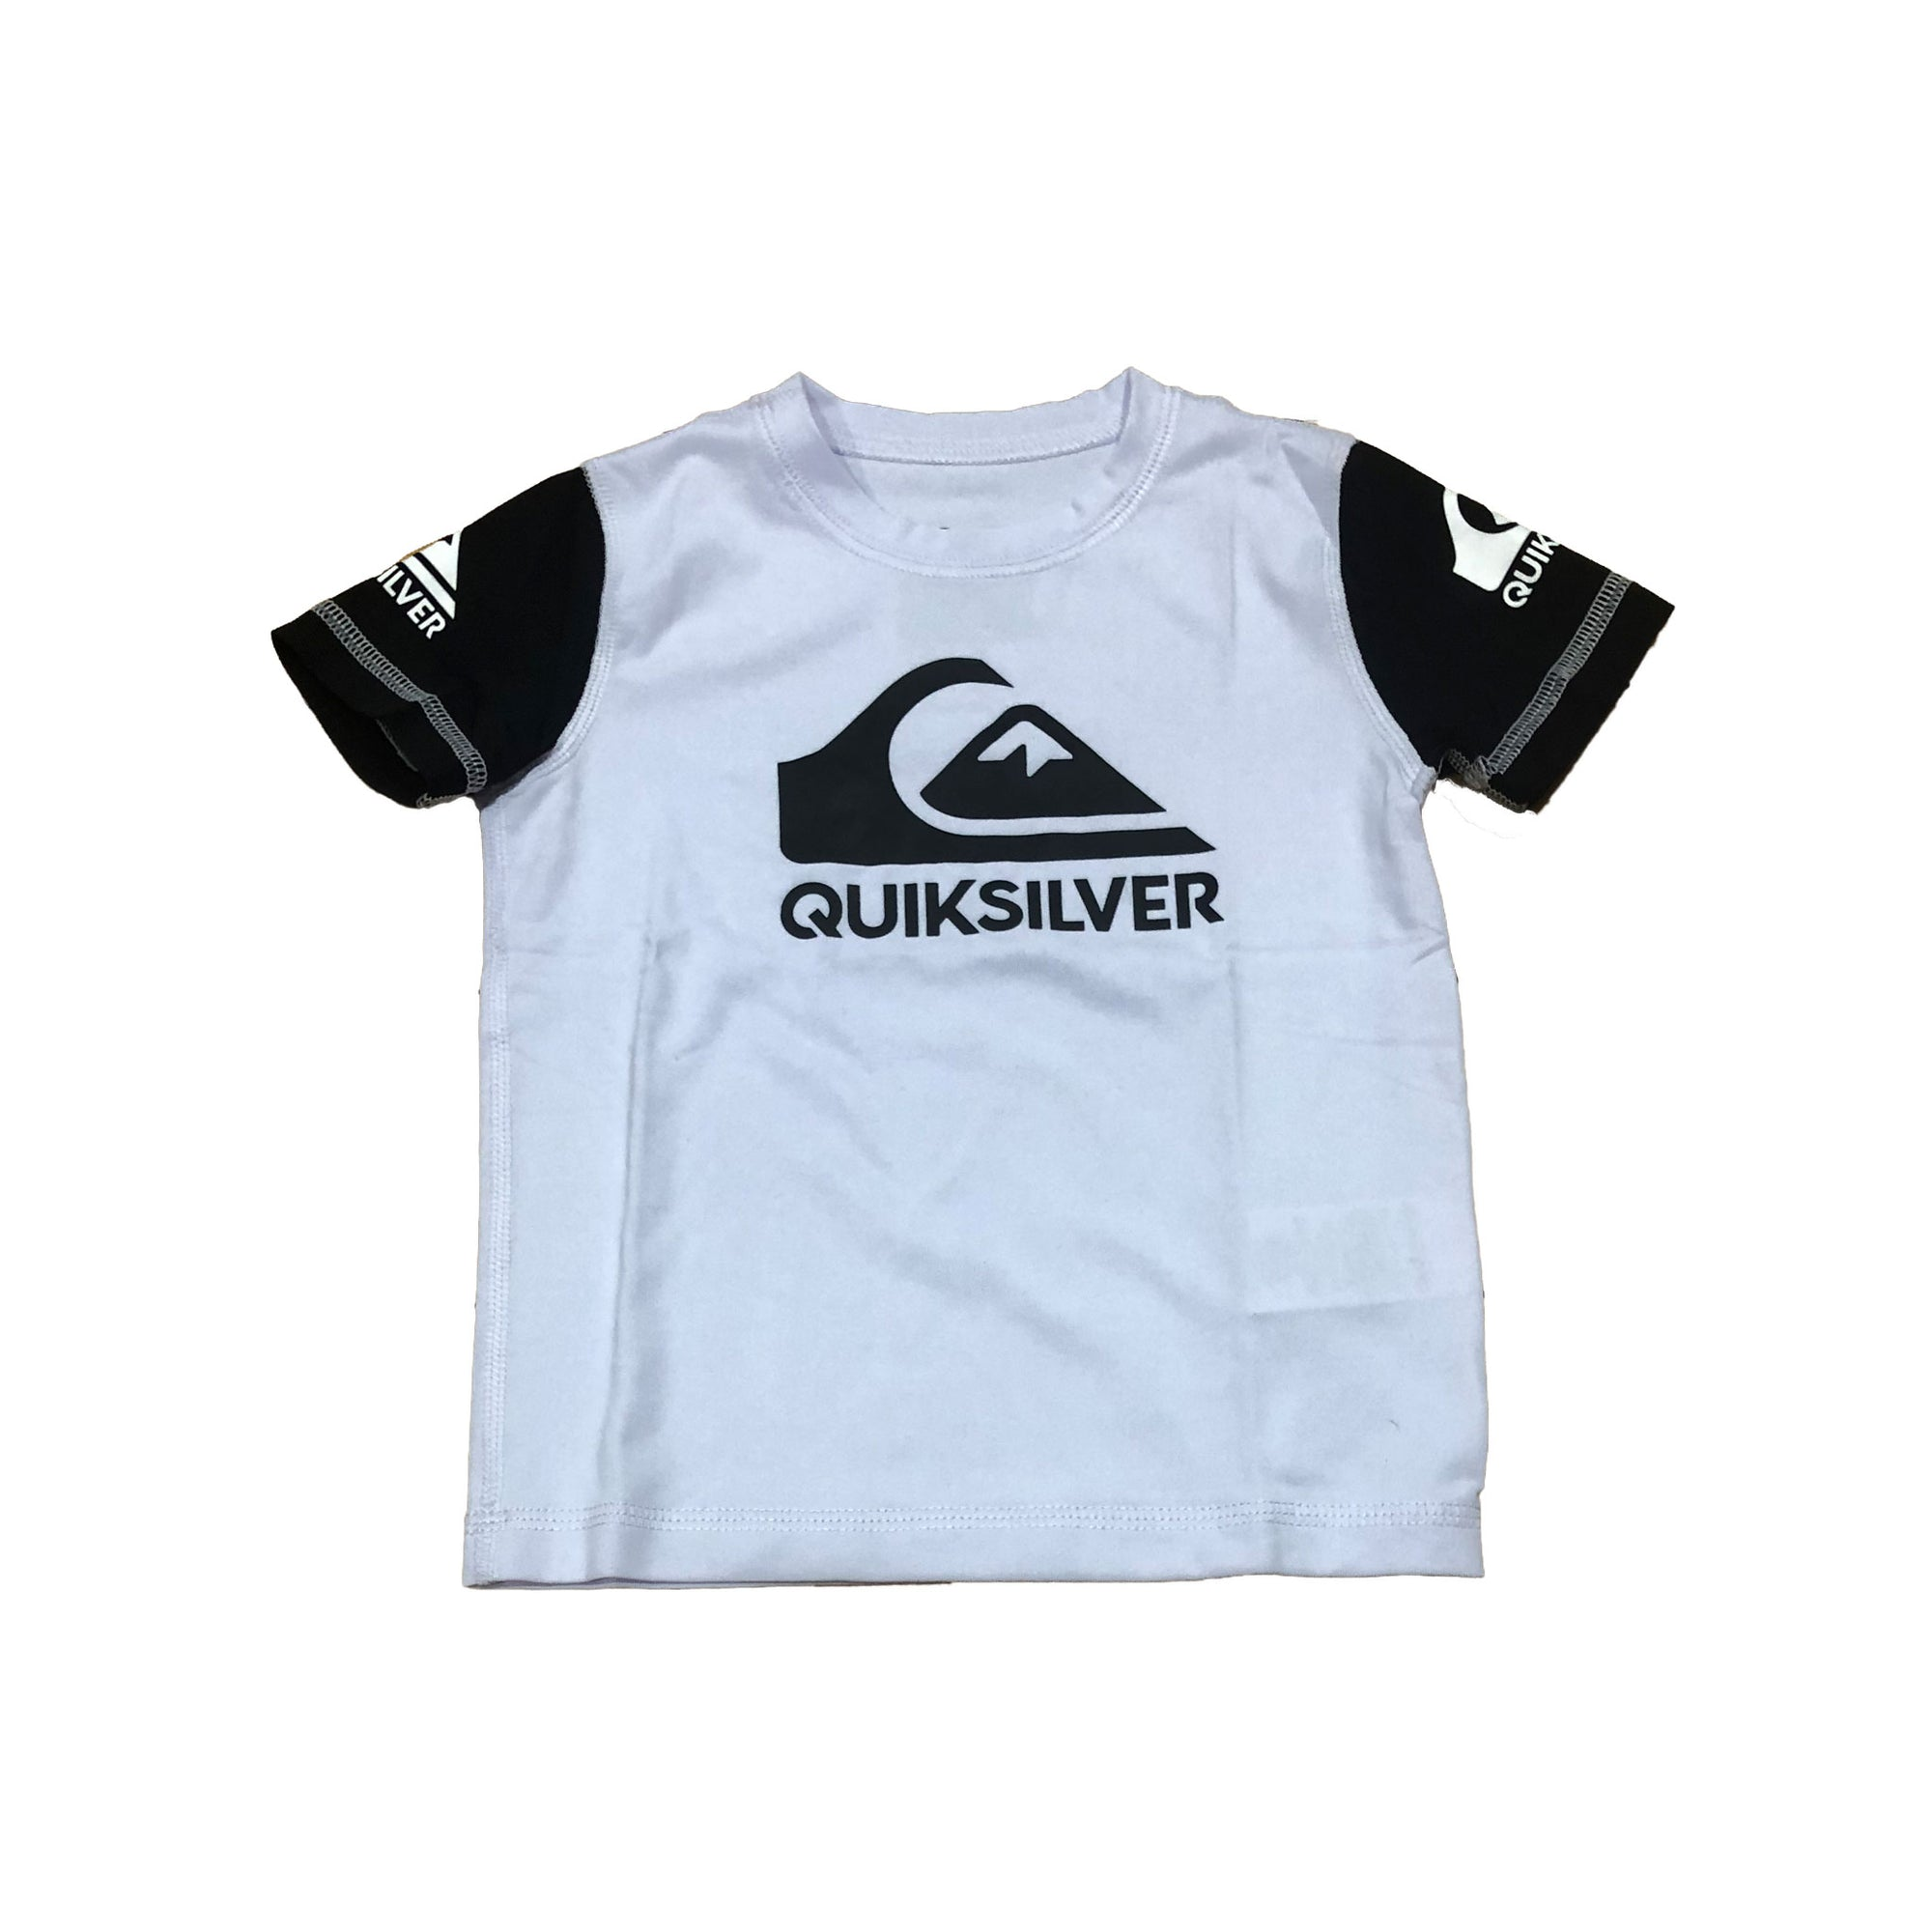 Quiksilver Heats On Boy's S/S Rashguard